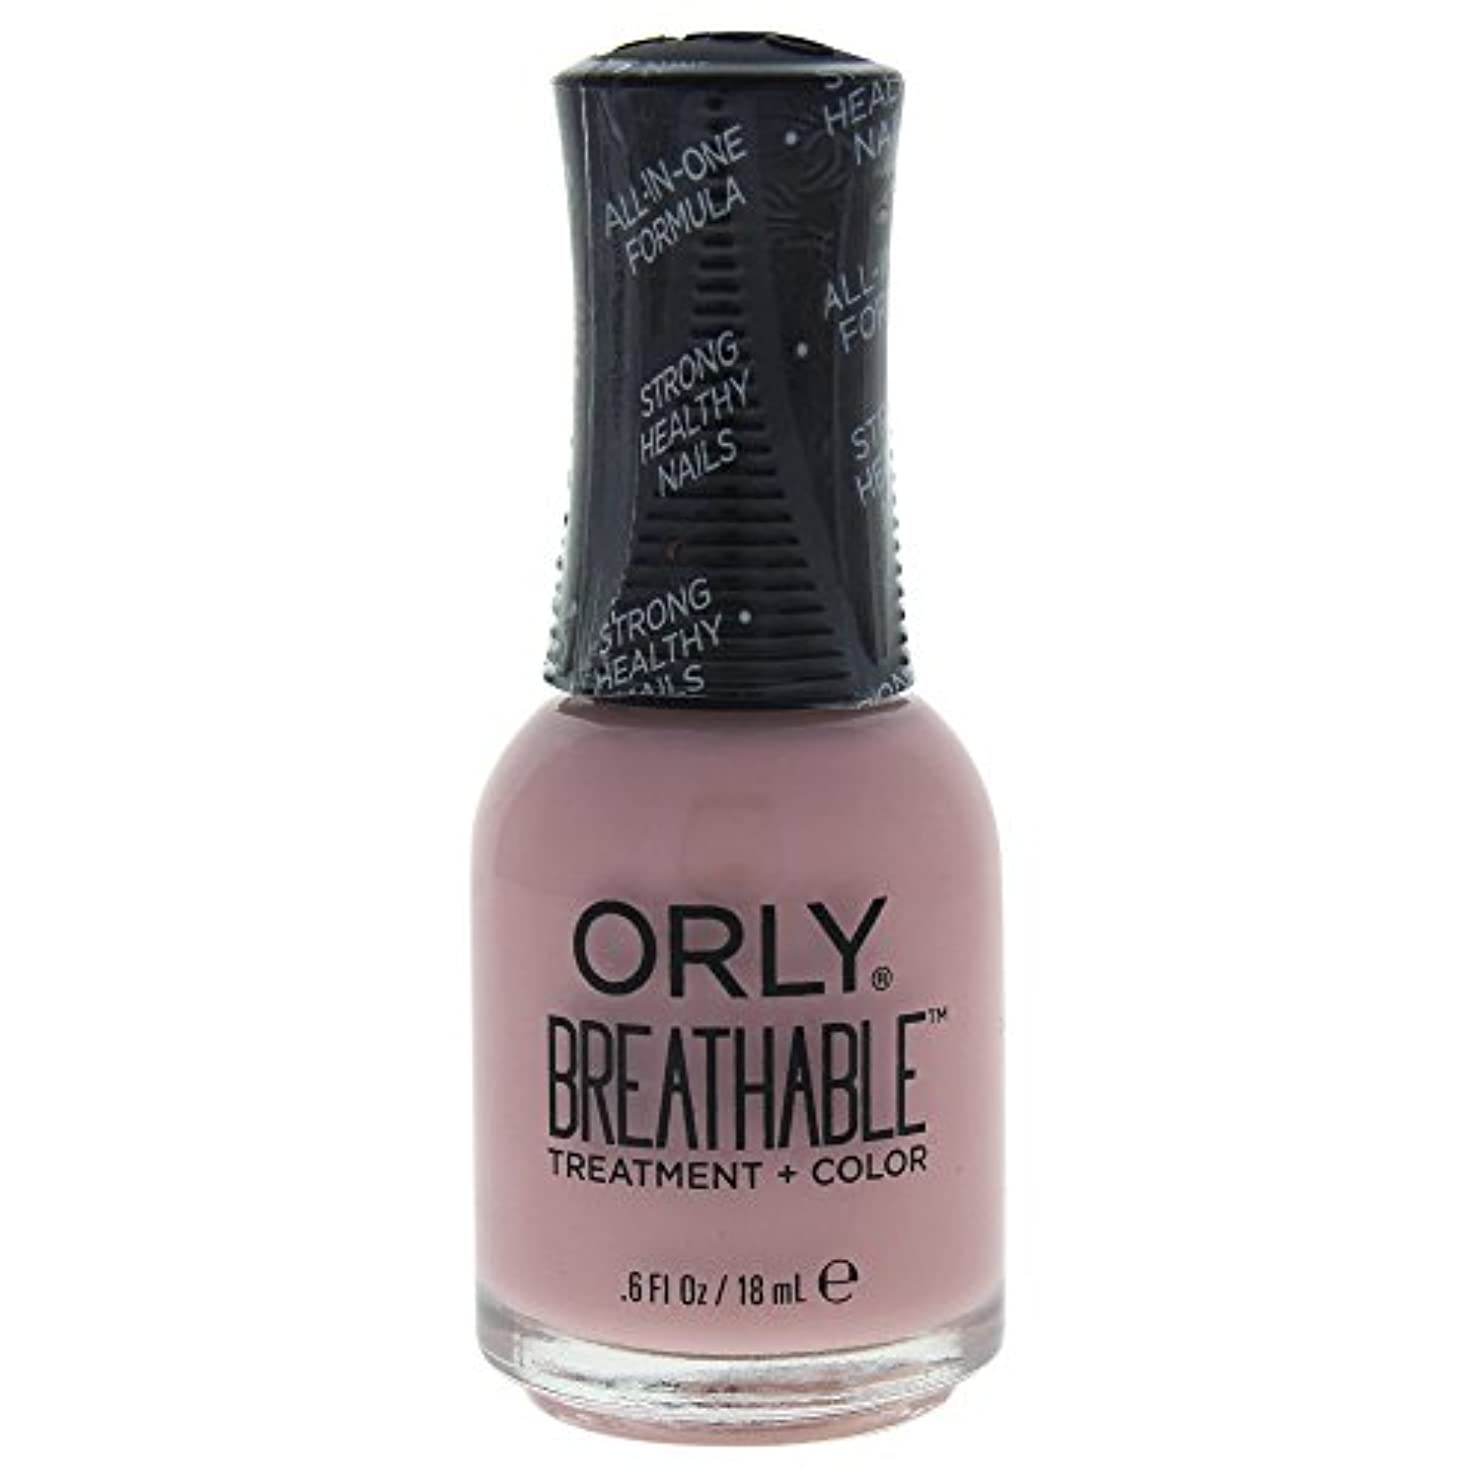 水分毛細血管アイドルOrly Breathable Treatment + Color Nail Lacquer - Sheer Luck - 0.6oz / 18ml